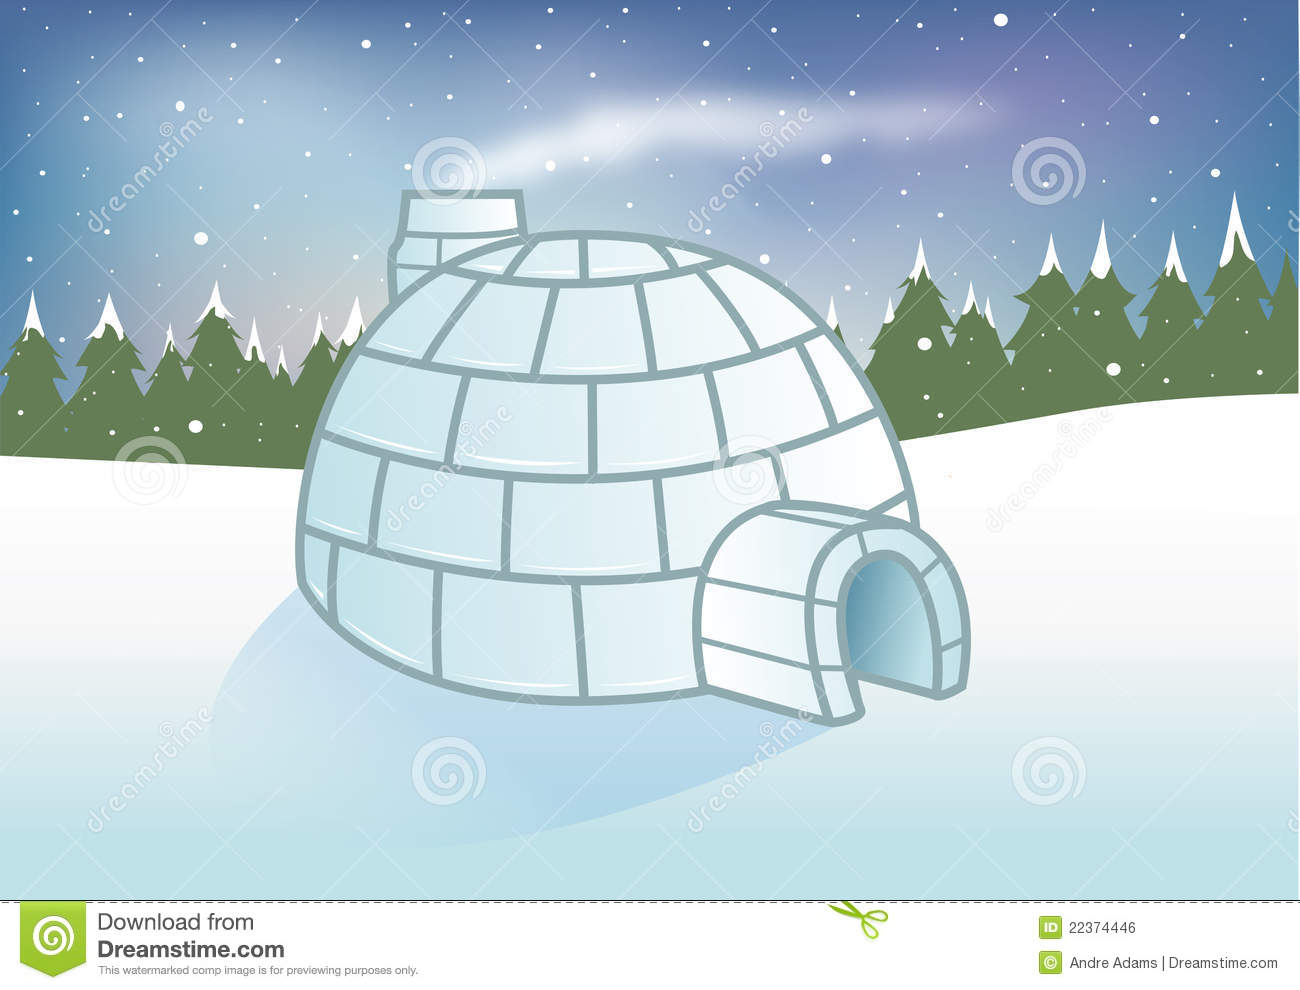 igloo snowy background royalty free stock image image haunted house clip art black and white haunted house clip art freaky